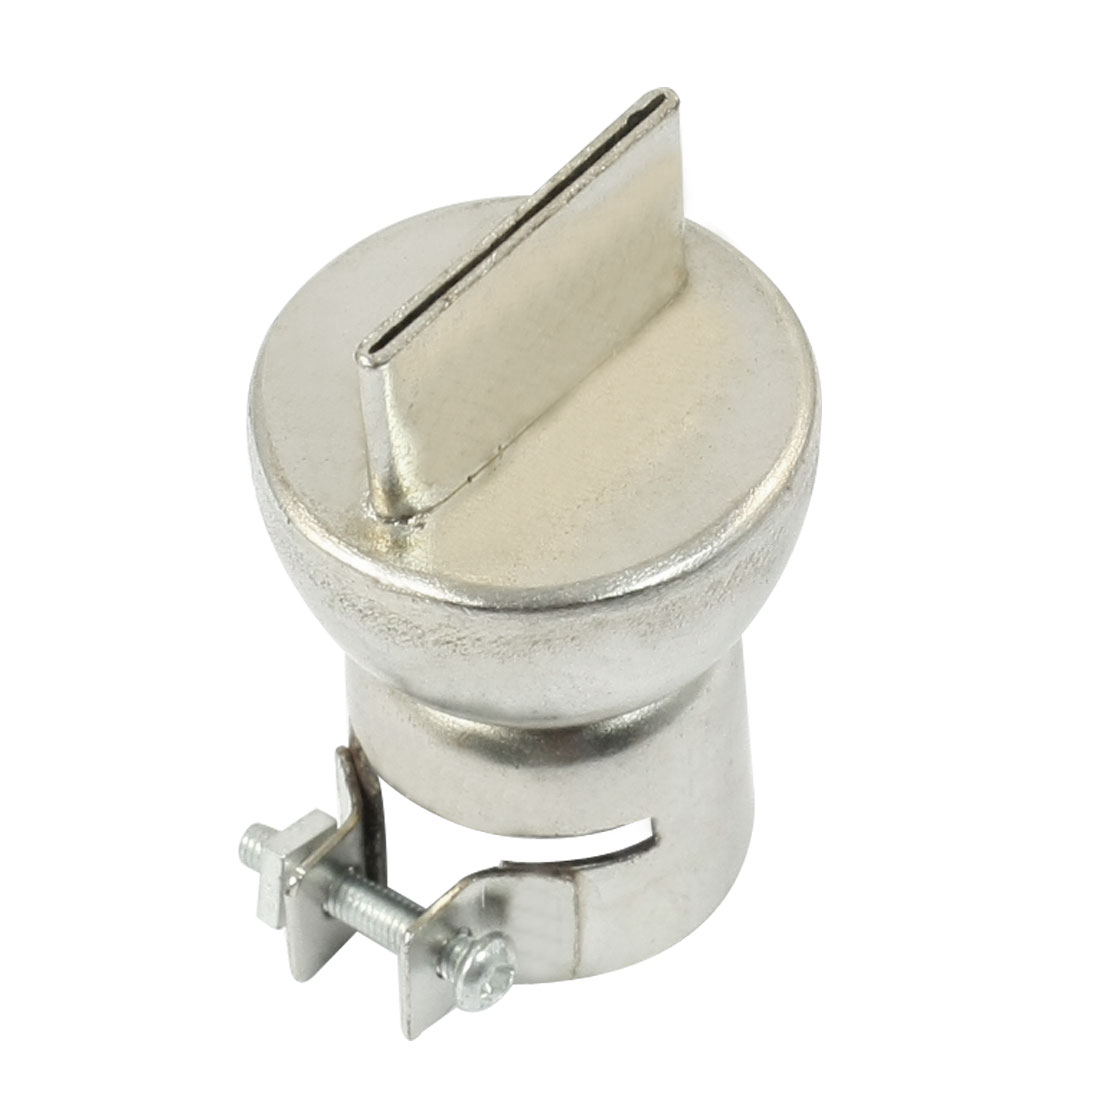 A1191 Stainless Steel 2mm x 26mm SIP Nozzle for 850 Hot Air Gun